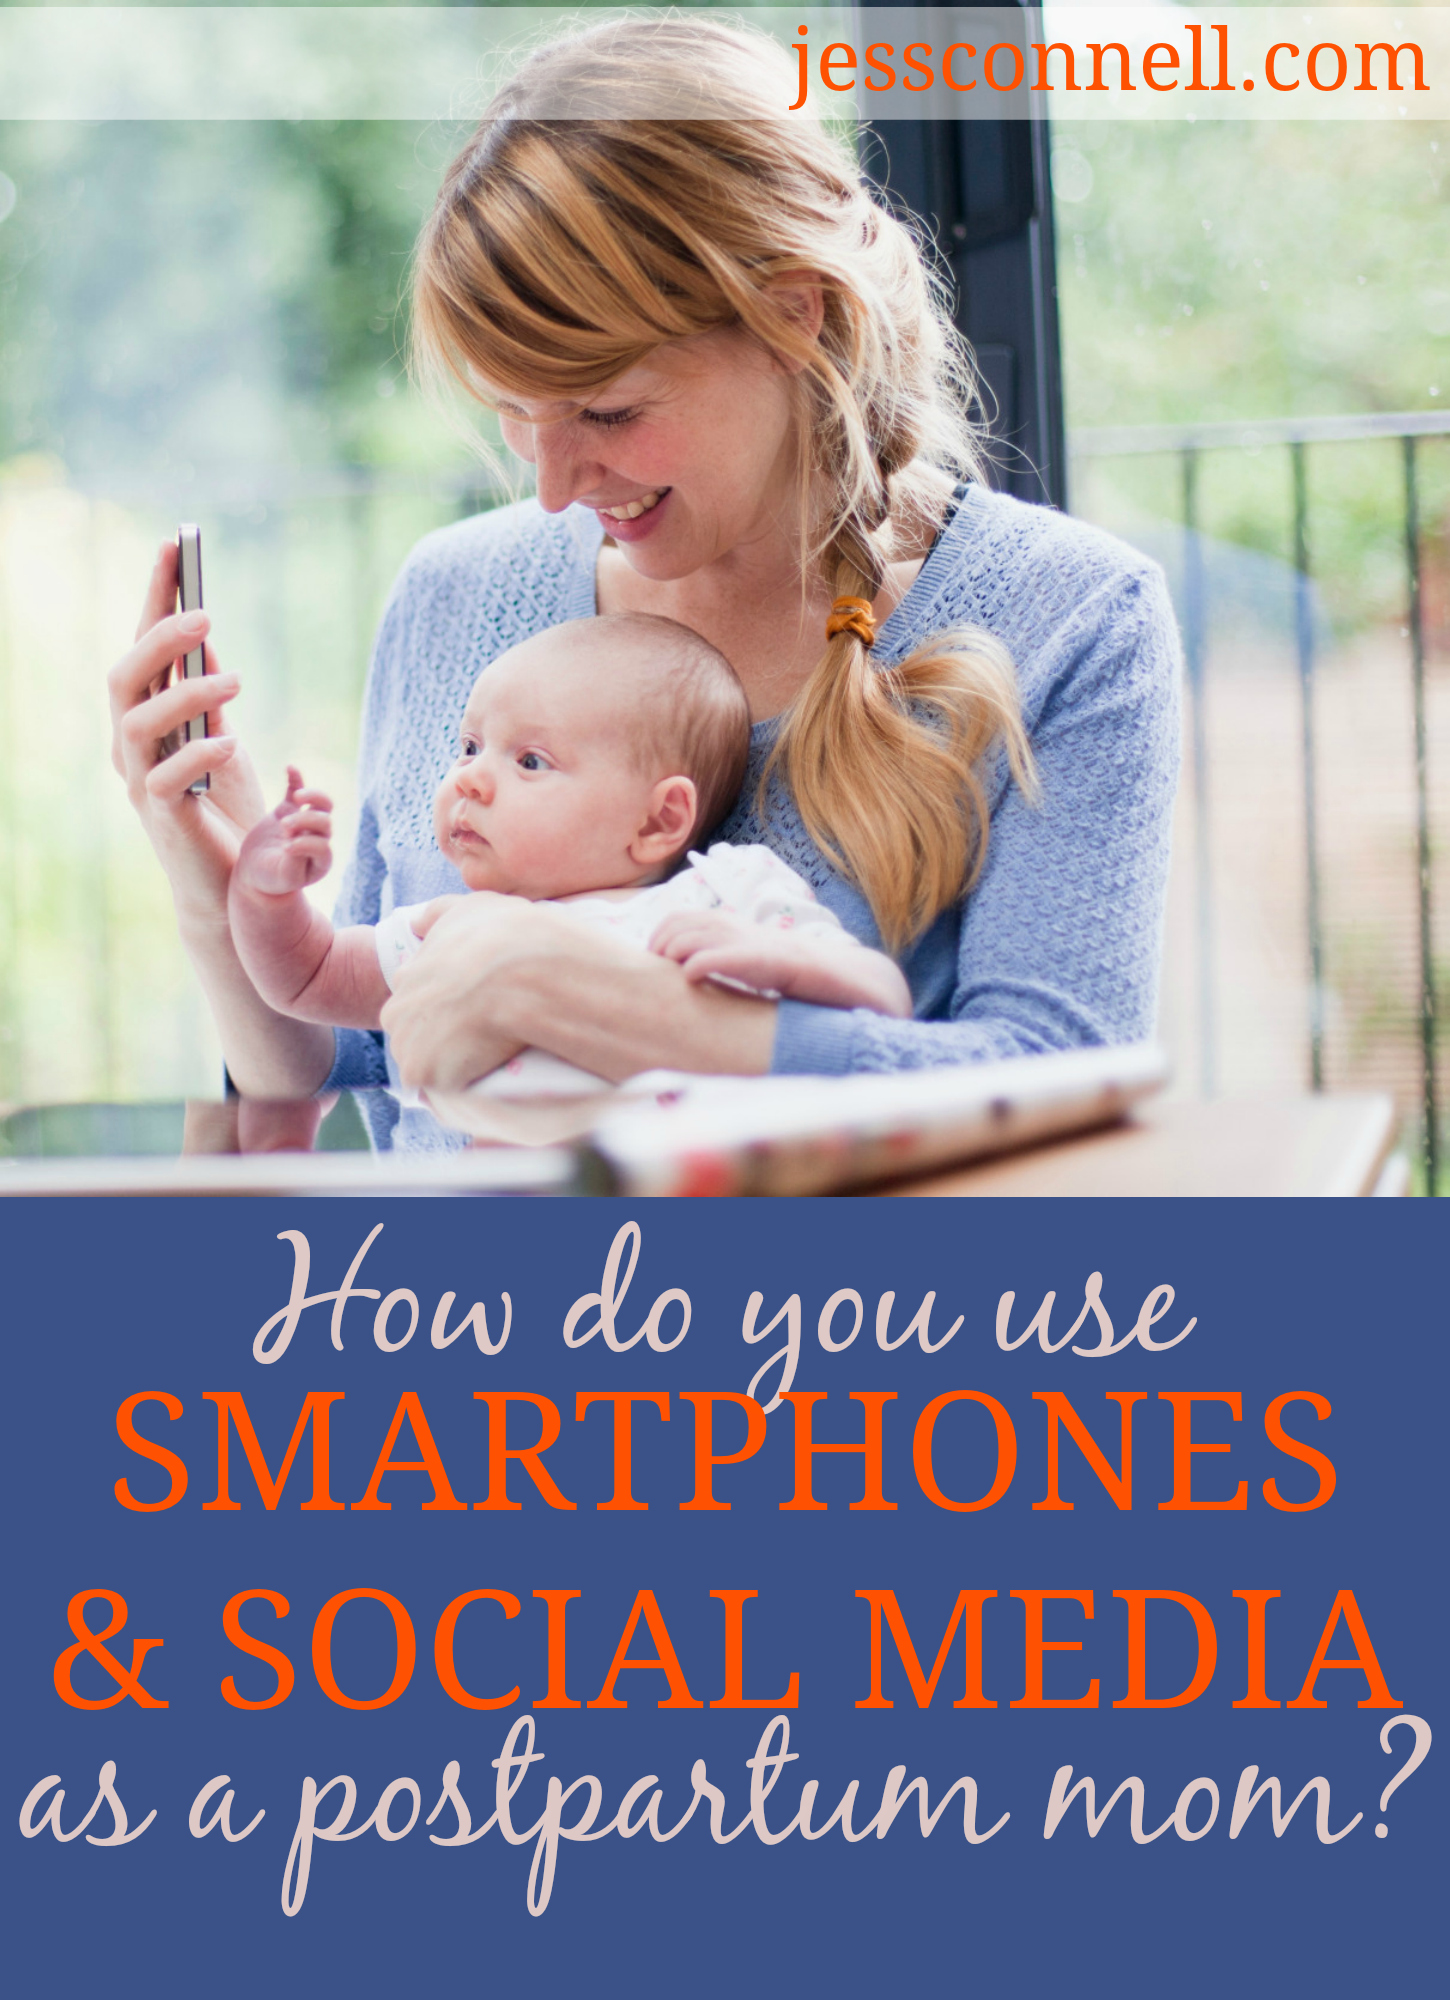 How Do You Use Smartphones & Social Media as a Postpartum Mom?